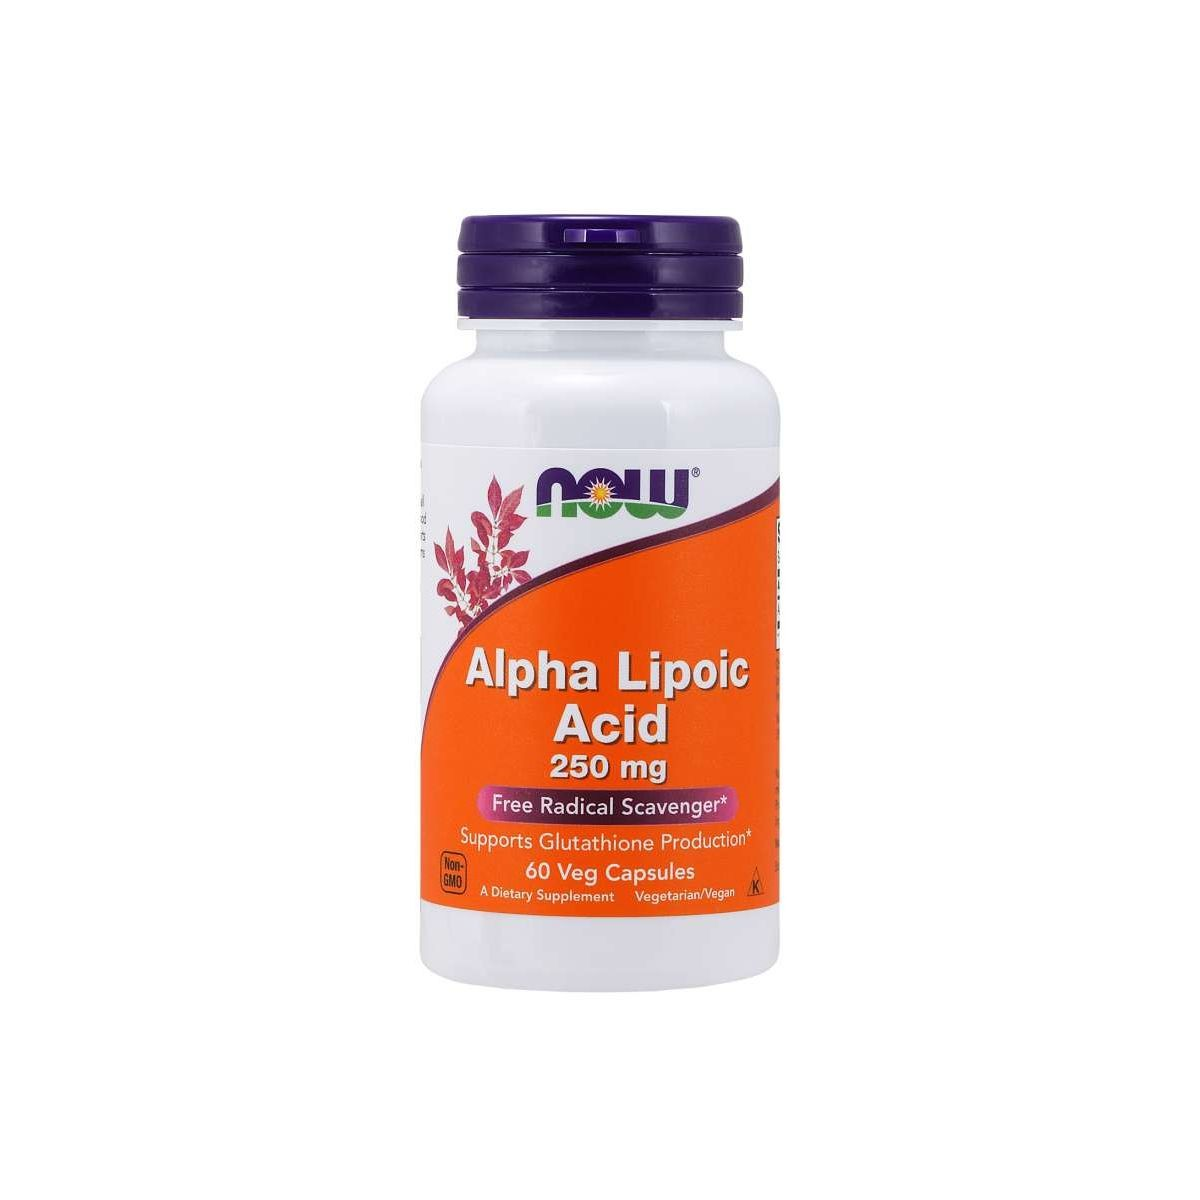 Alpha Lipoic Acid 250 mg 60 Caps - Now Foods